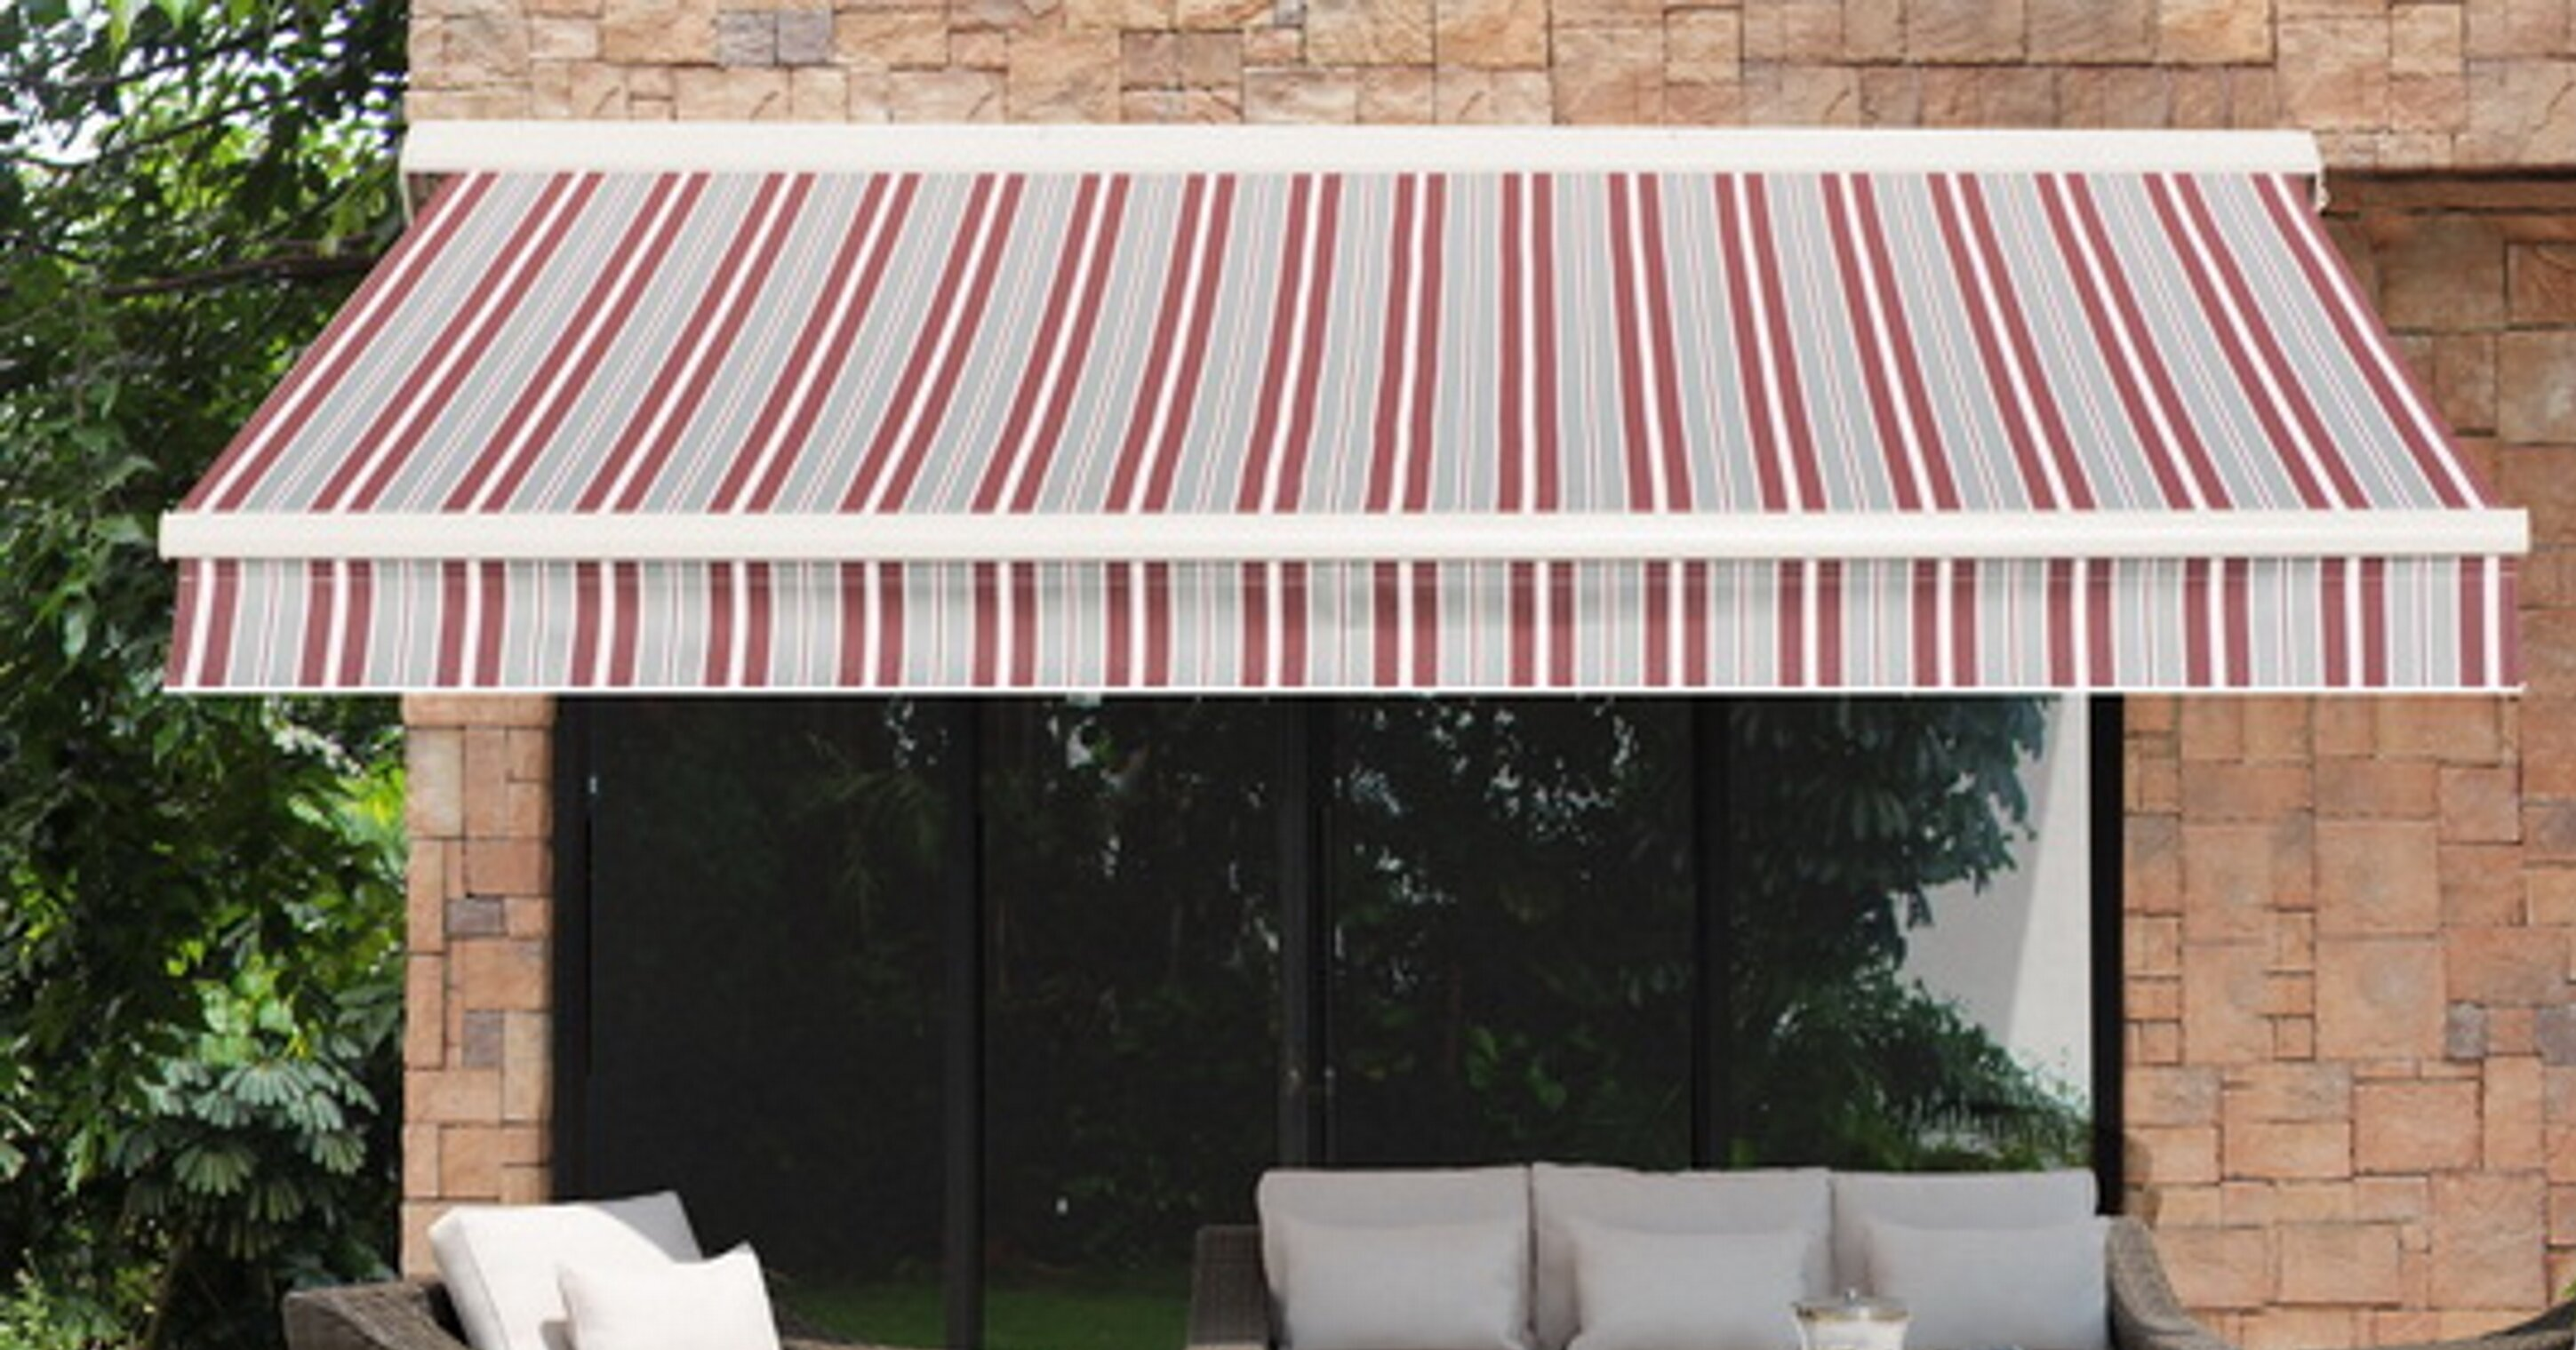 canopies awning awnings mark omnimark retrac beauty and